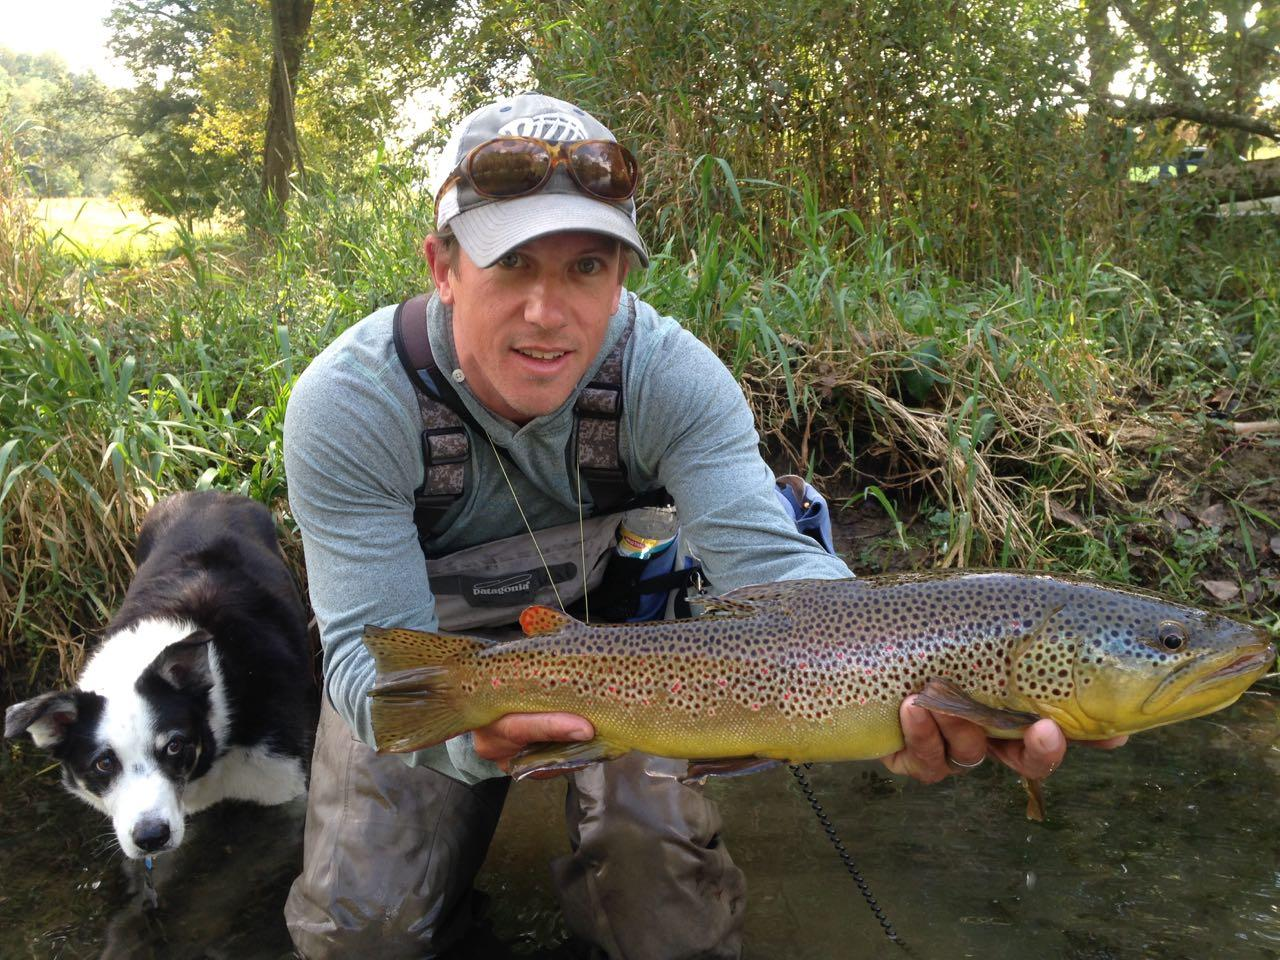 South holston river brown trout riverstone fly fishing for South holston river fishing report